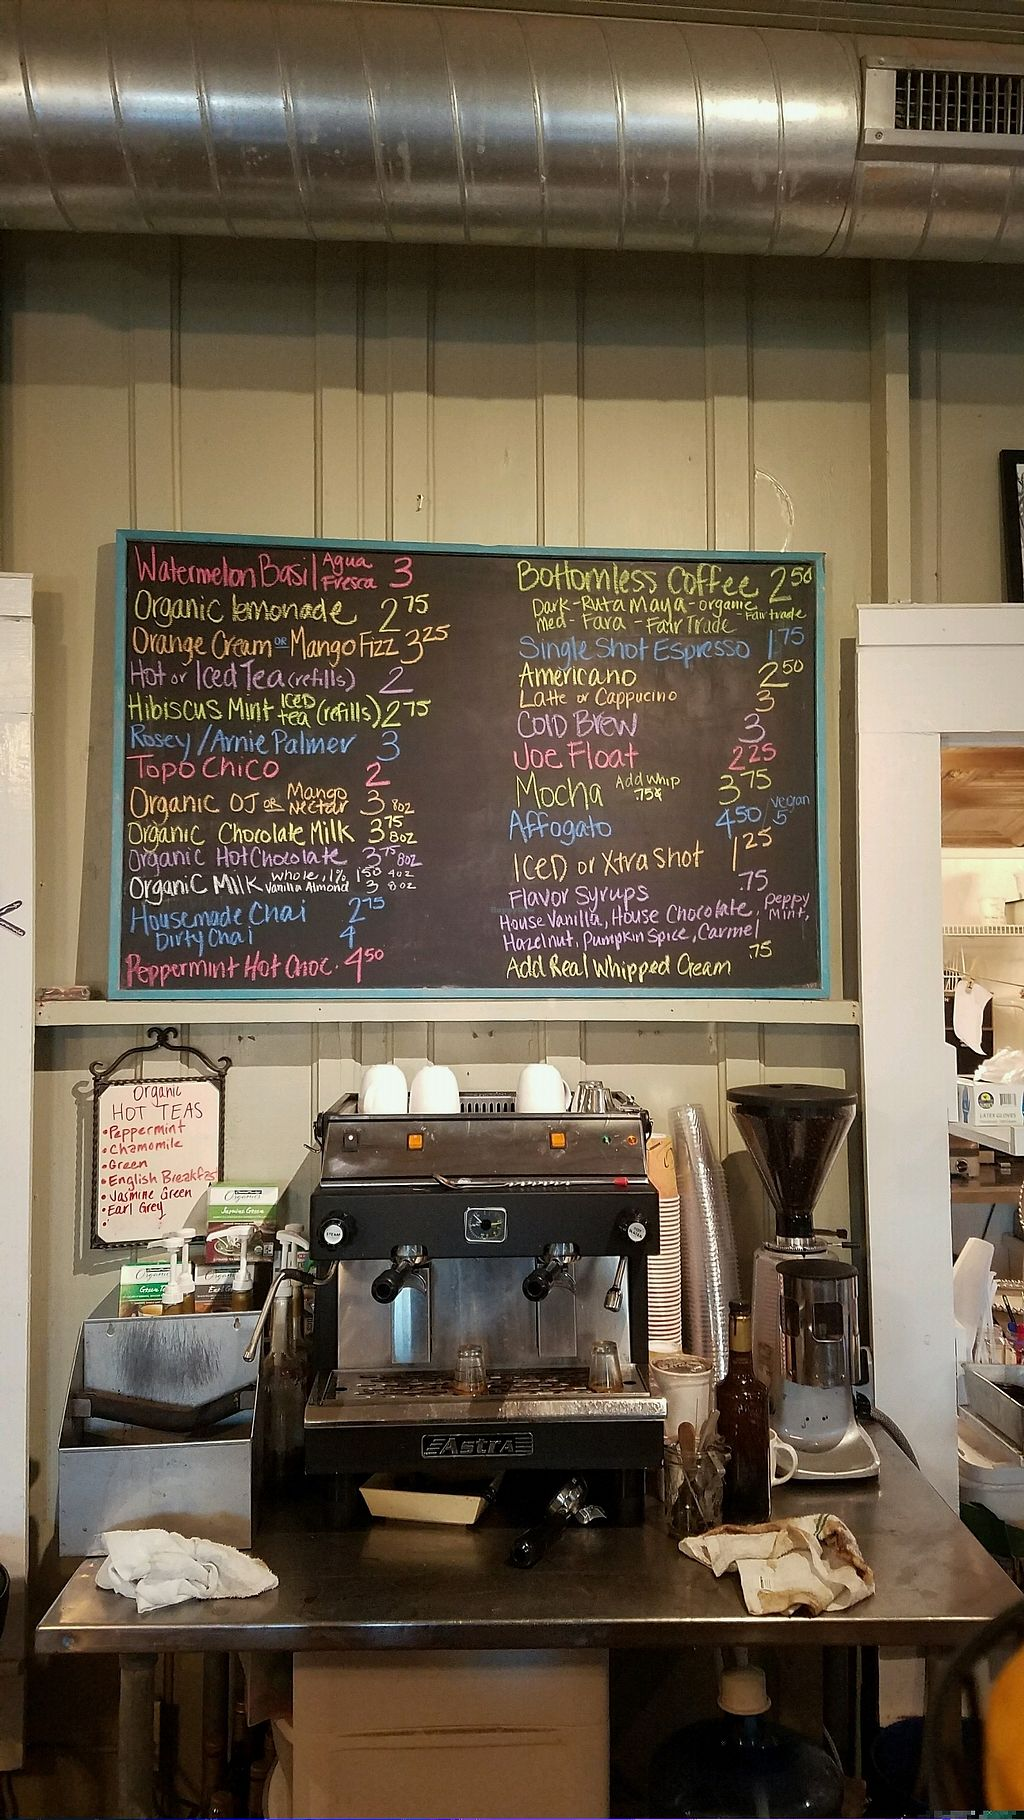 """Photo of Tough Cookie Bakery  by <a href=""""/members/profile/NTaiResting"""">NTaiResting</a> <br/>Menu board 2 of 3 <br/> December 20, 2017  - <a href='/contact/abuse/image/80319/337650'>Report</a>"""